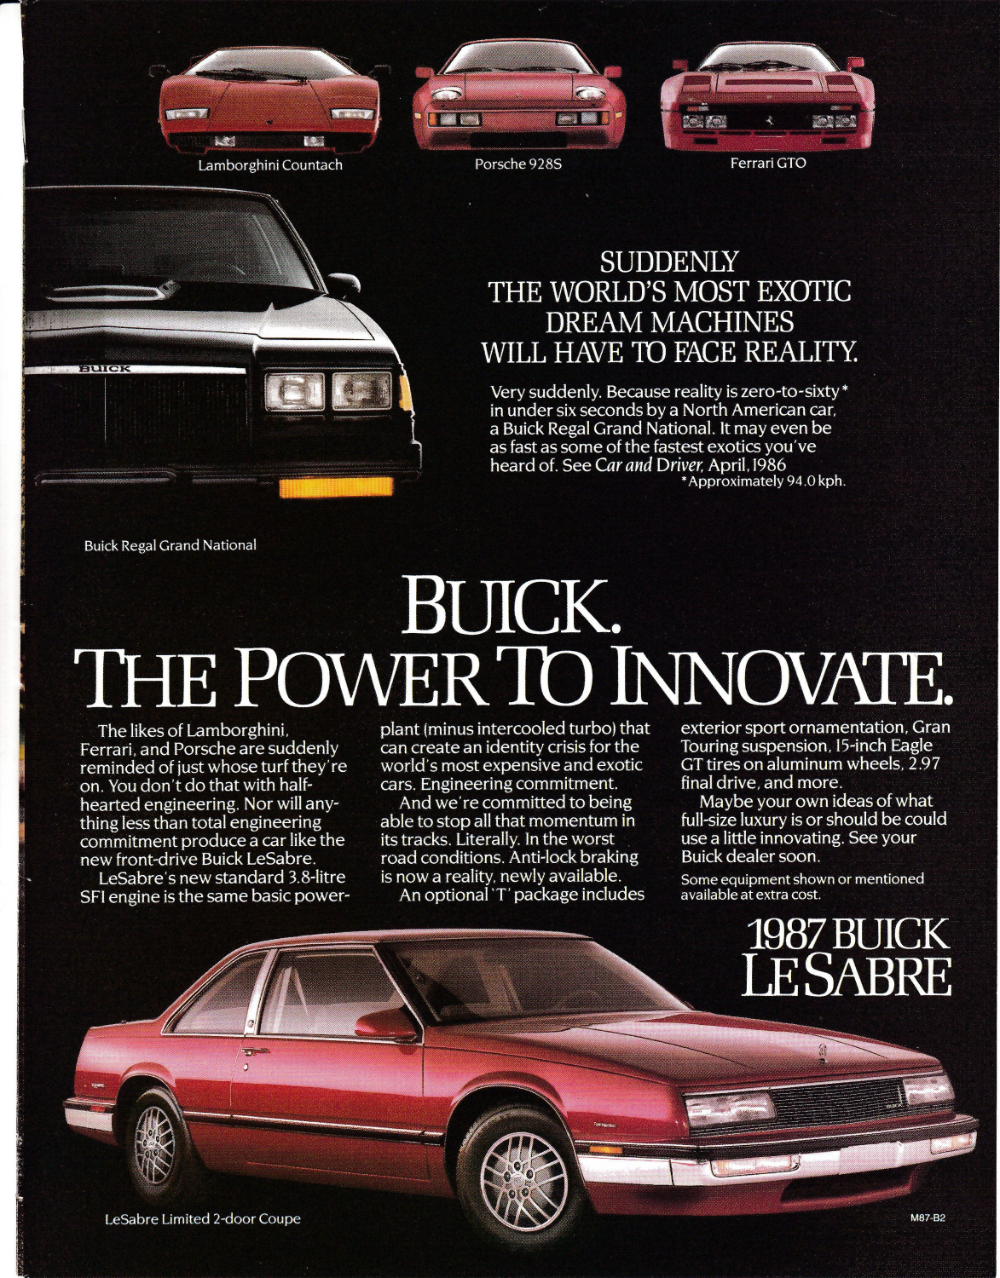 1987 Buick Le Sabre Limited 2 Door Coupe 3 8 Liter Original Etsy Buick Coupe Car Ads